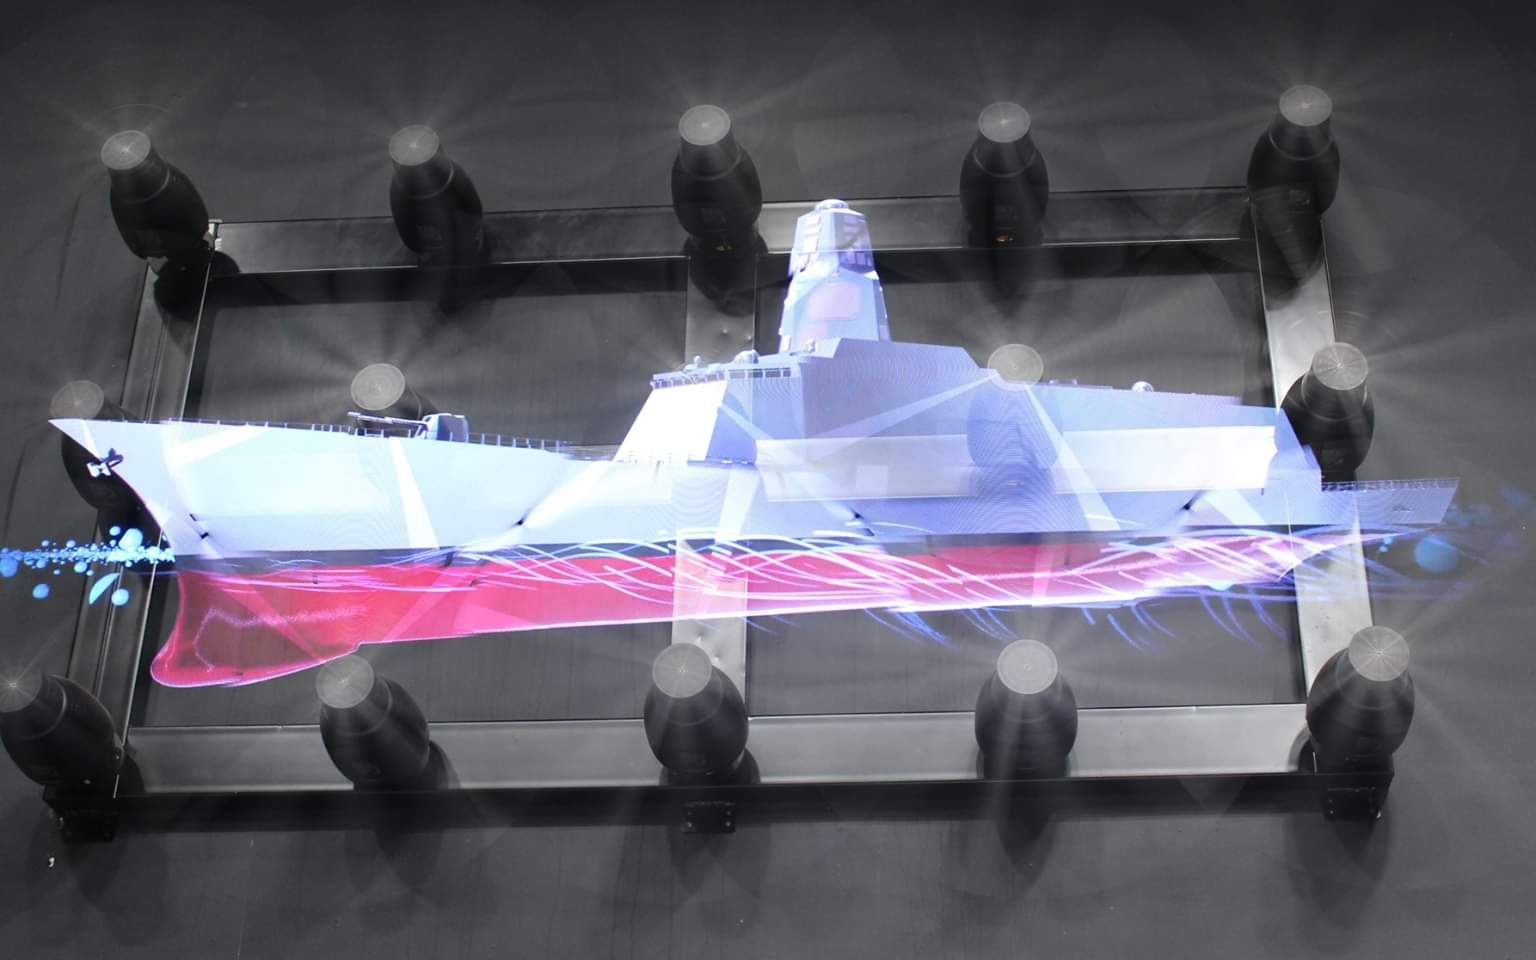 Korean Defence Agency announces the bidding for the next generation destroyer (KDDX)